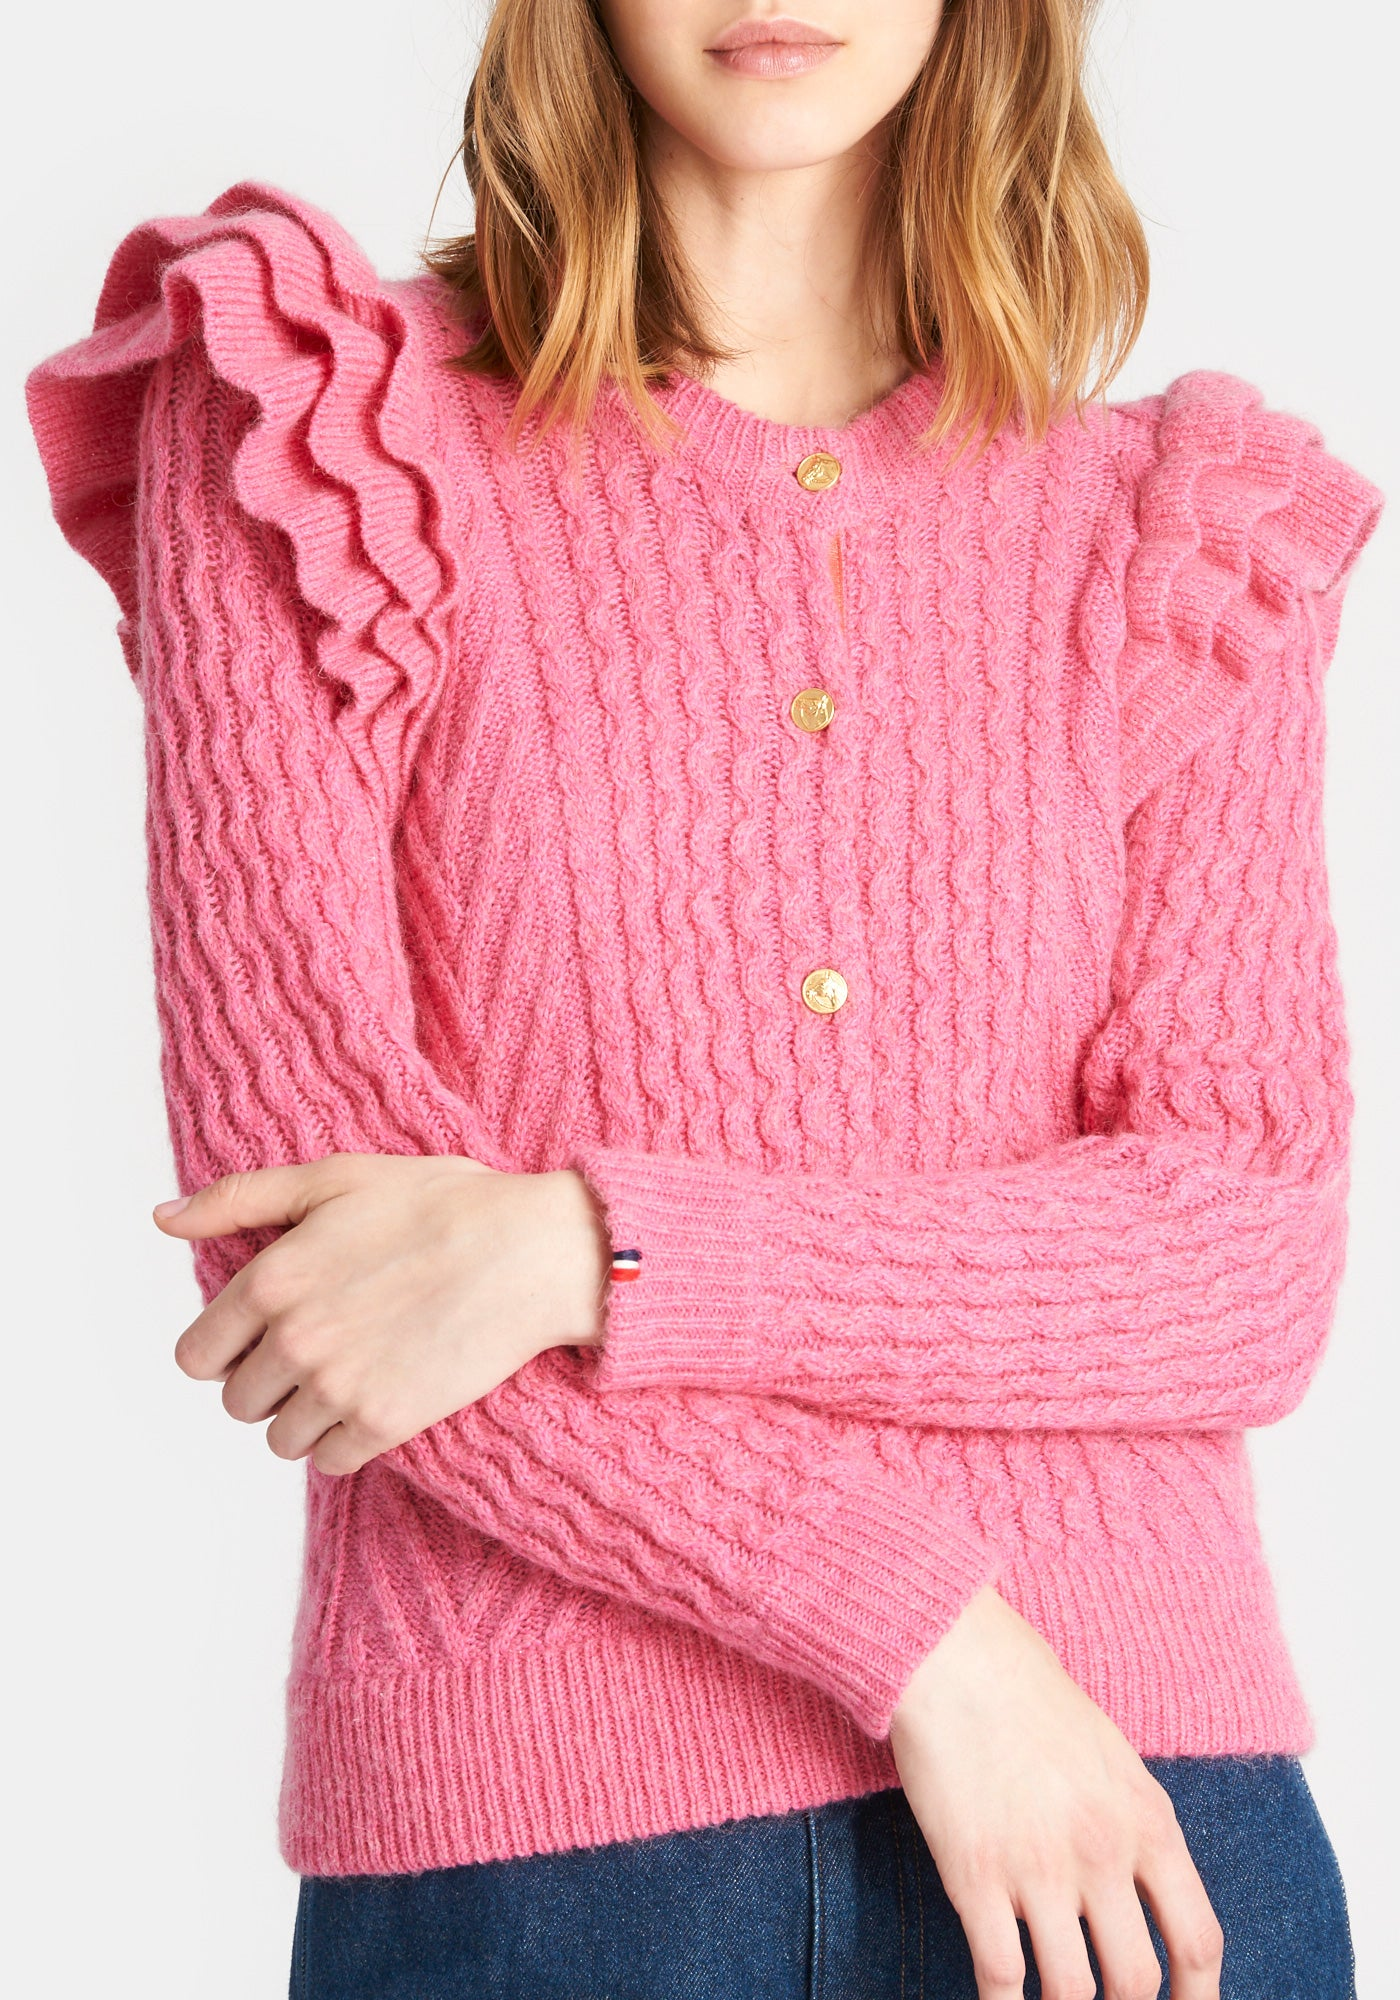 Nora Cardigan - Hot Pink - CLARE V. x DEMYLEE